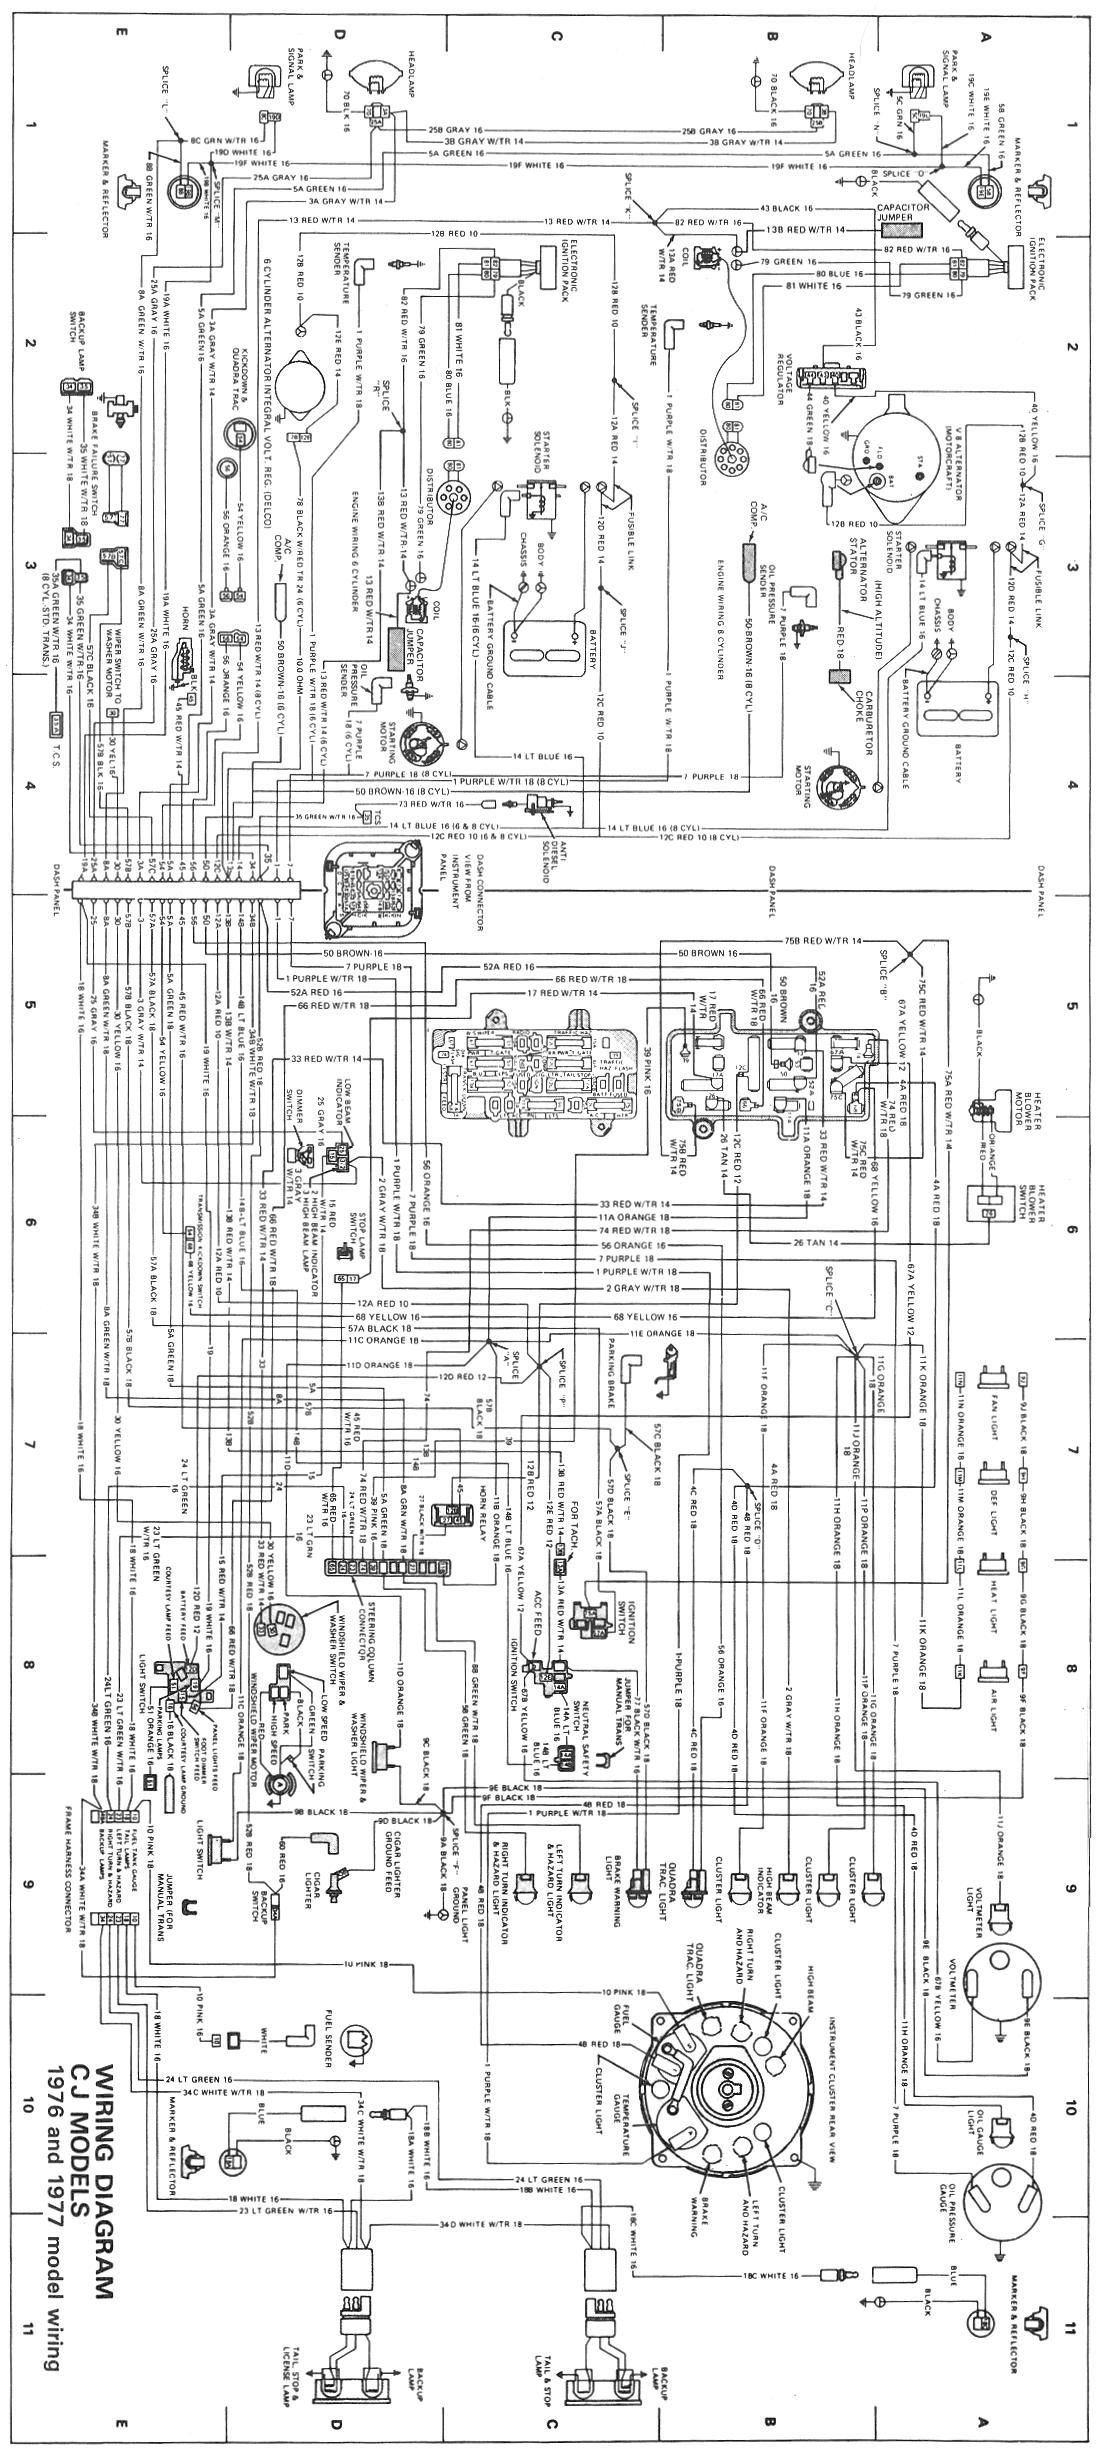 8d25ded6e3673519e155875e09844e5e cj wiring diagram 1976 1977 jpg 1,100�2,459 pixels 1976 jeep cj5 willys cj5 wiring diagram at bakdesigns.co